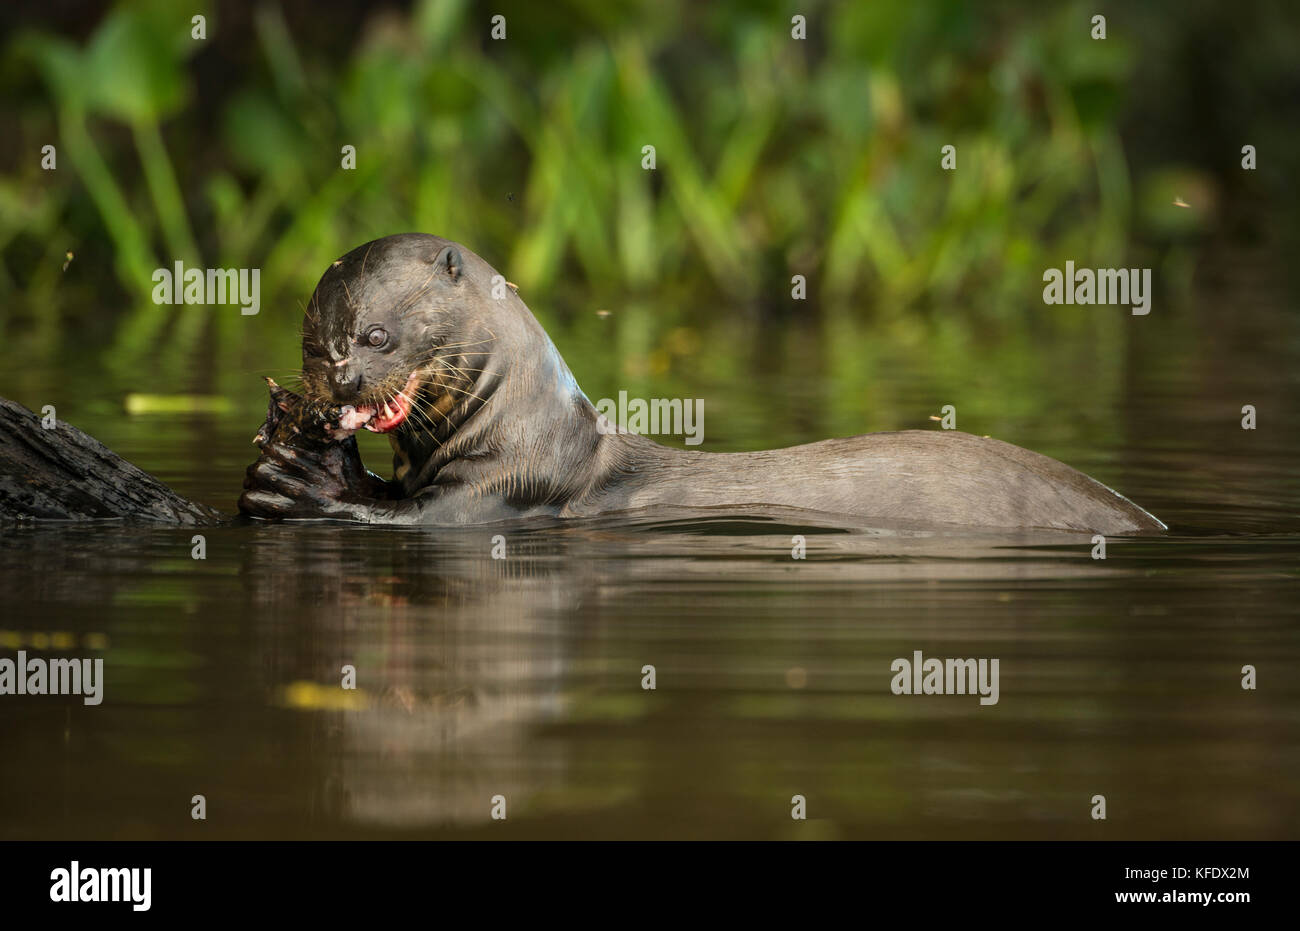 Giant Otter eating fish in the Pantanal - Stock Image